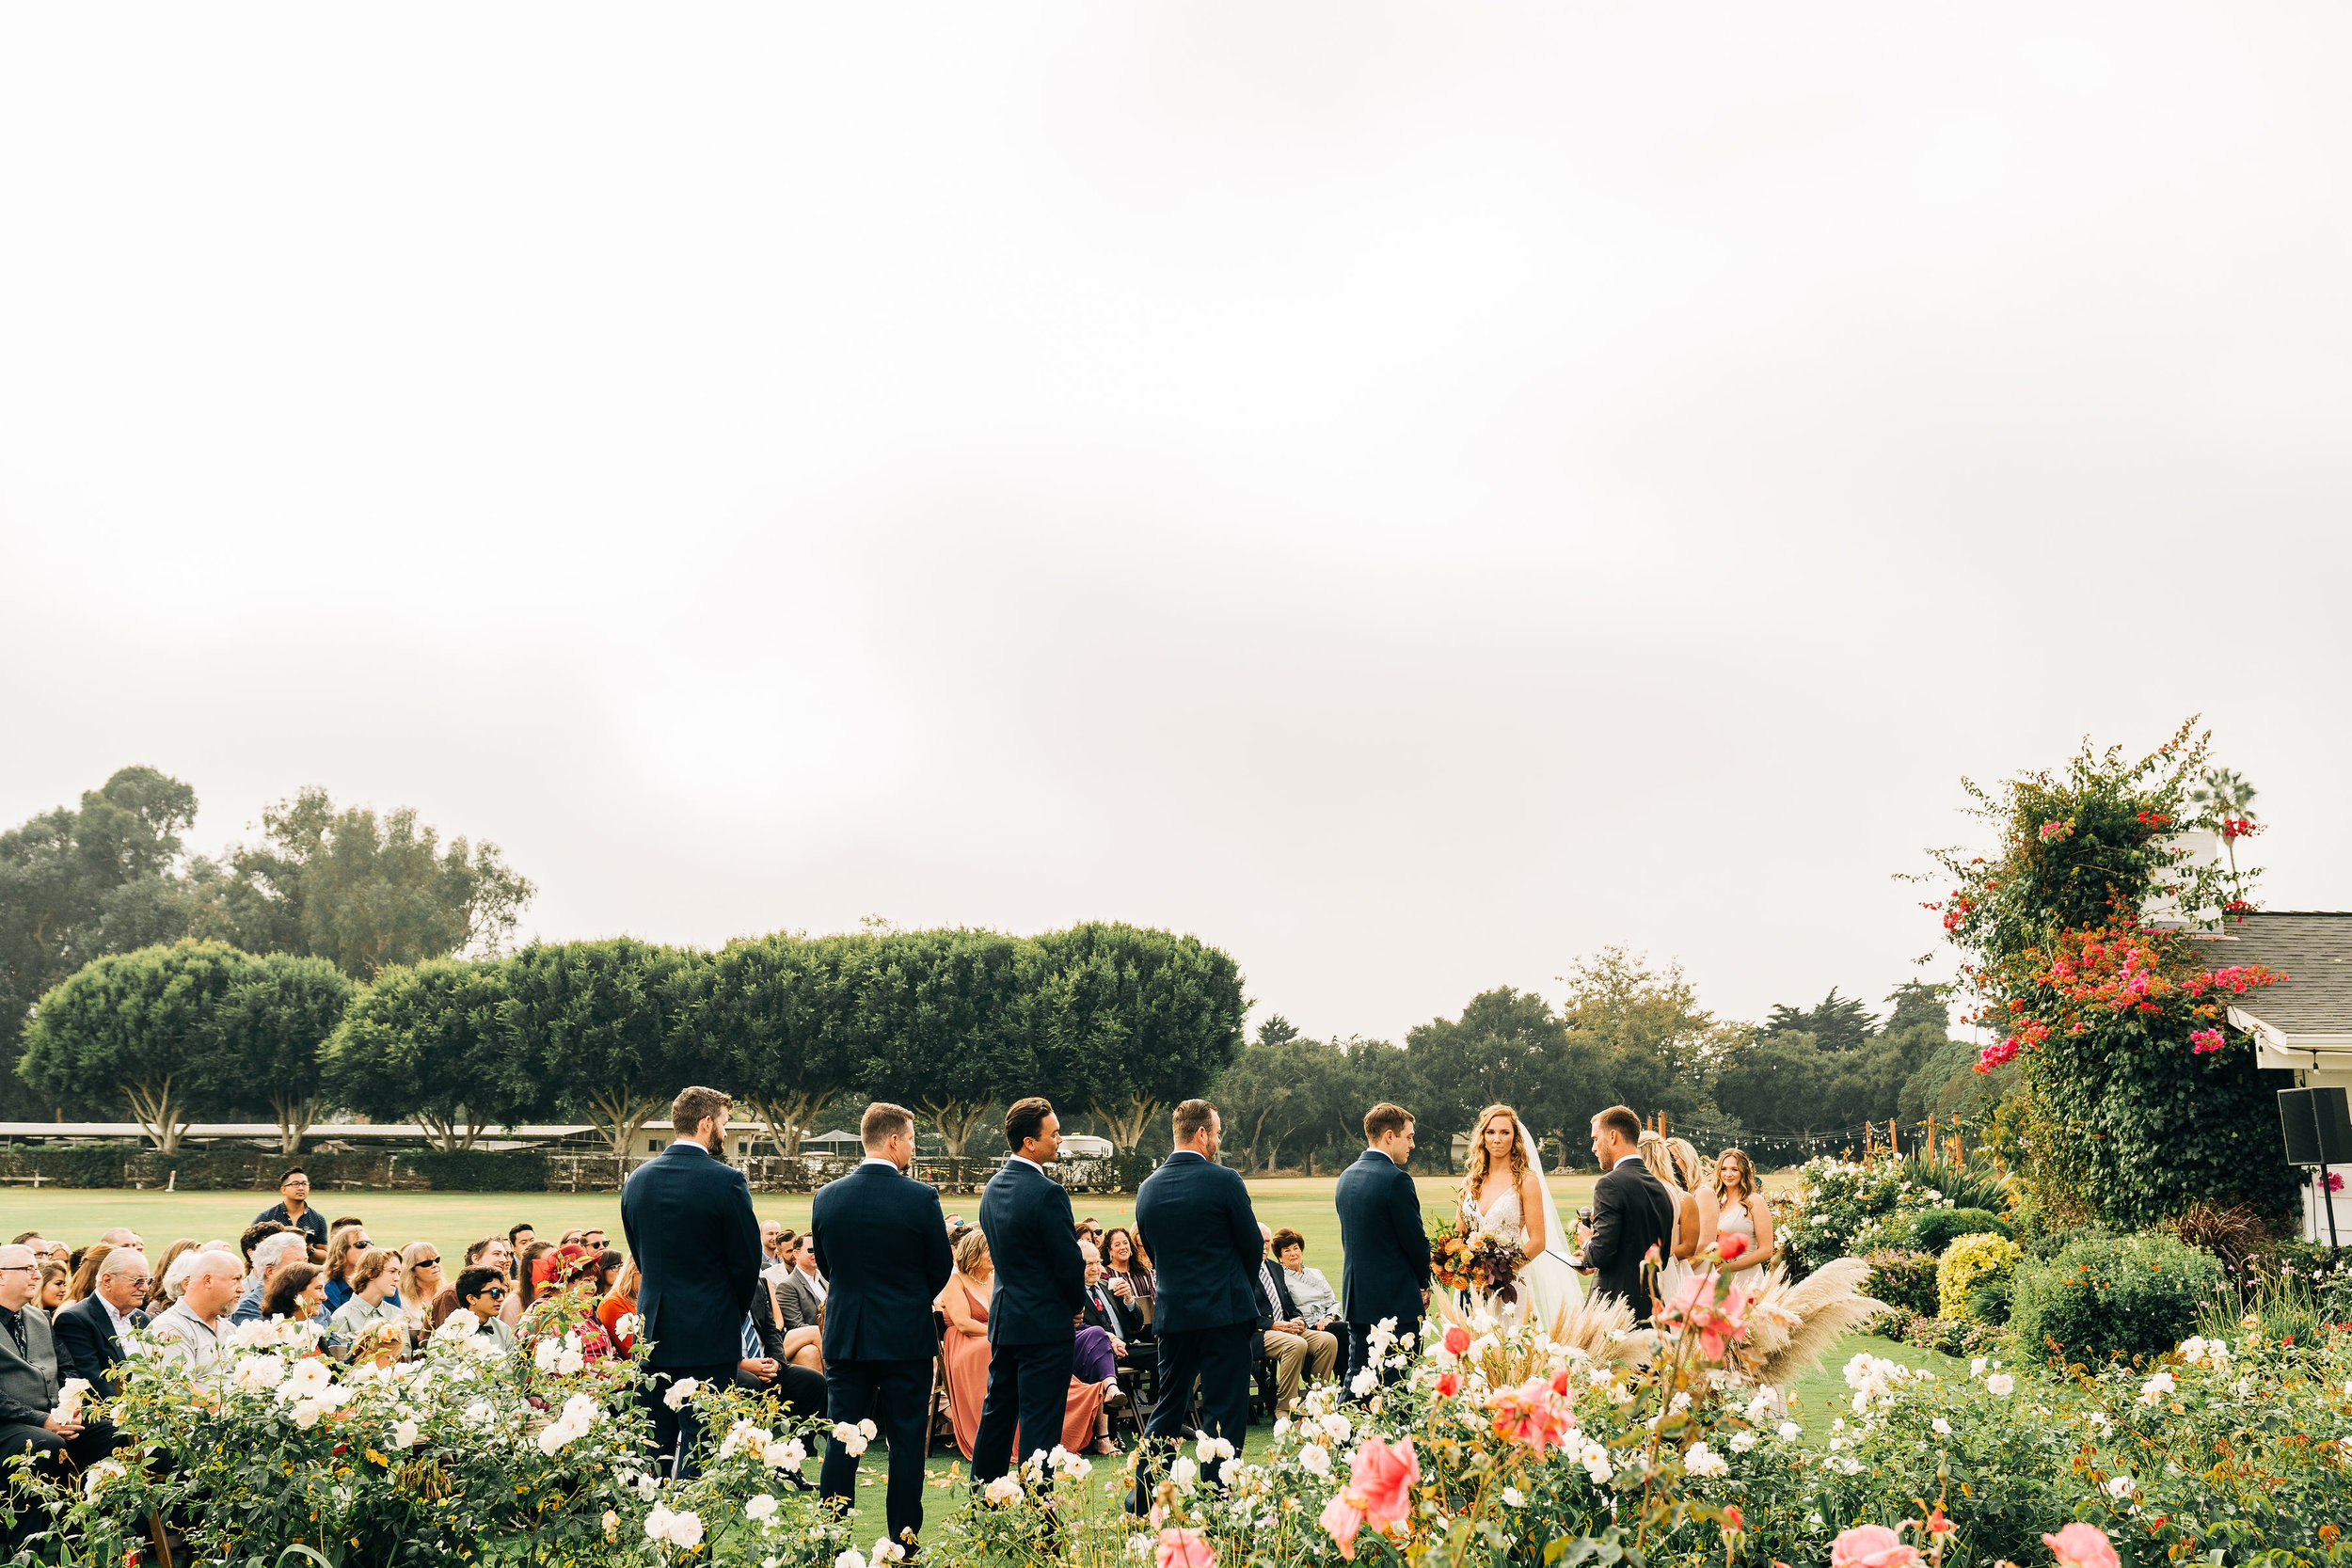 allie-shupe-tyler-wiggins-wedding-santa-barbara 099.jpg